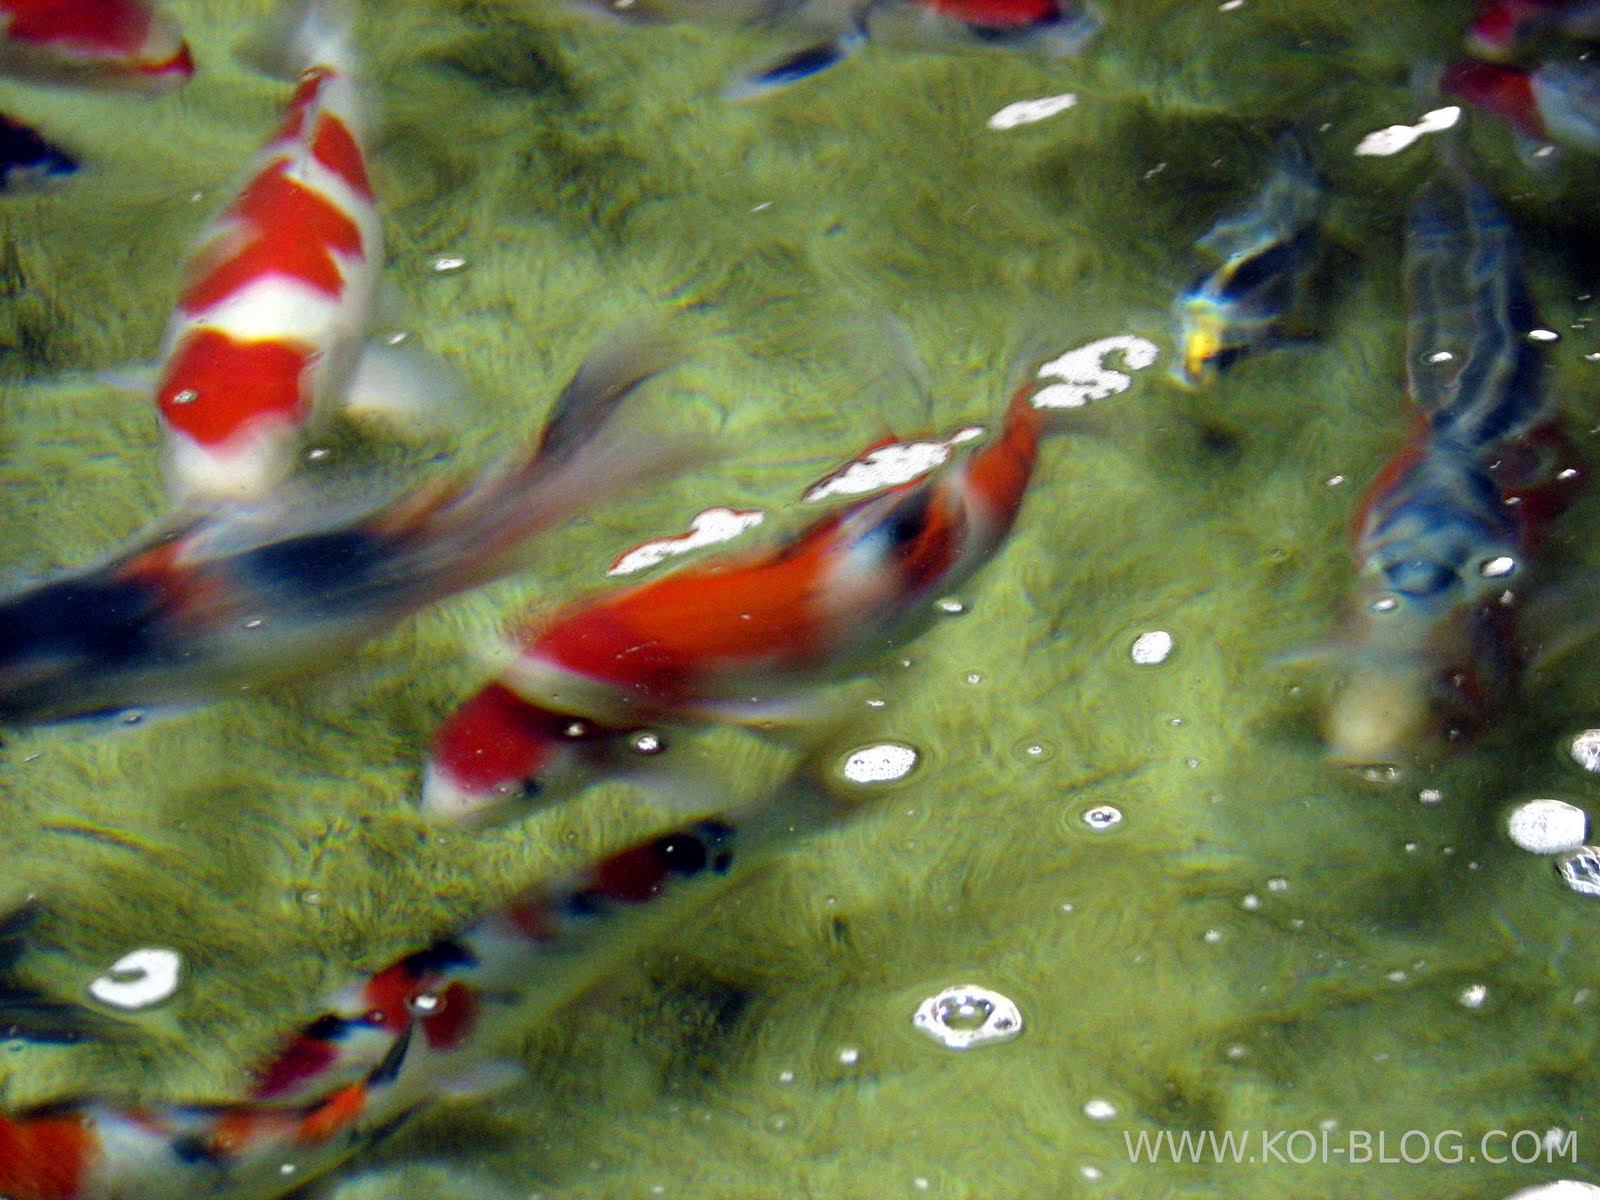 Rare Koi Fish Of Koi Blog Koi Fish Varieties